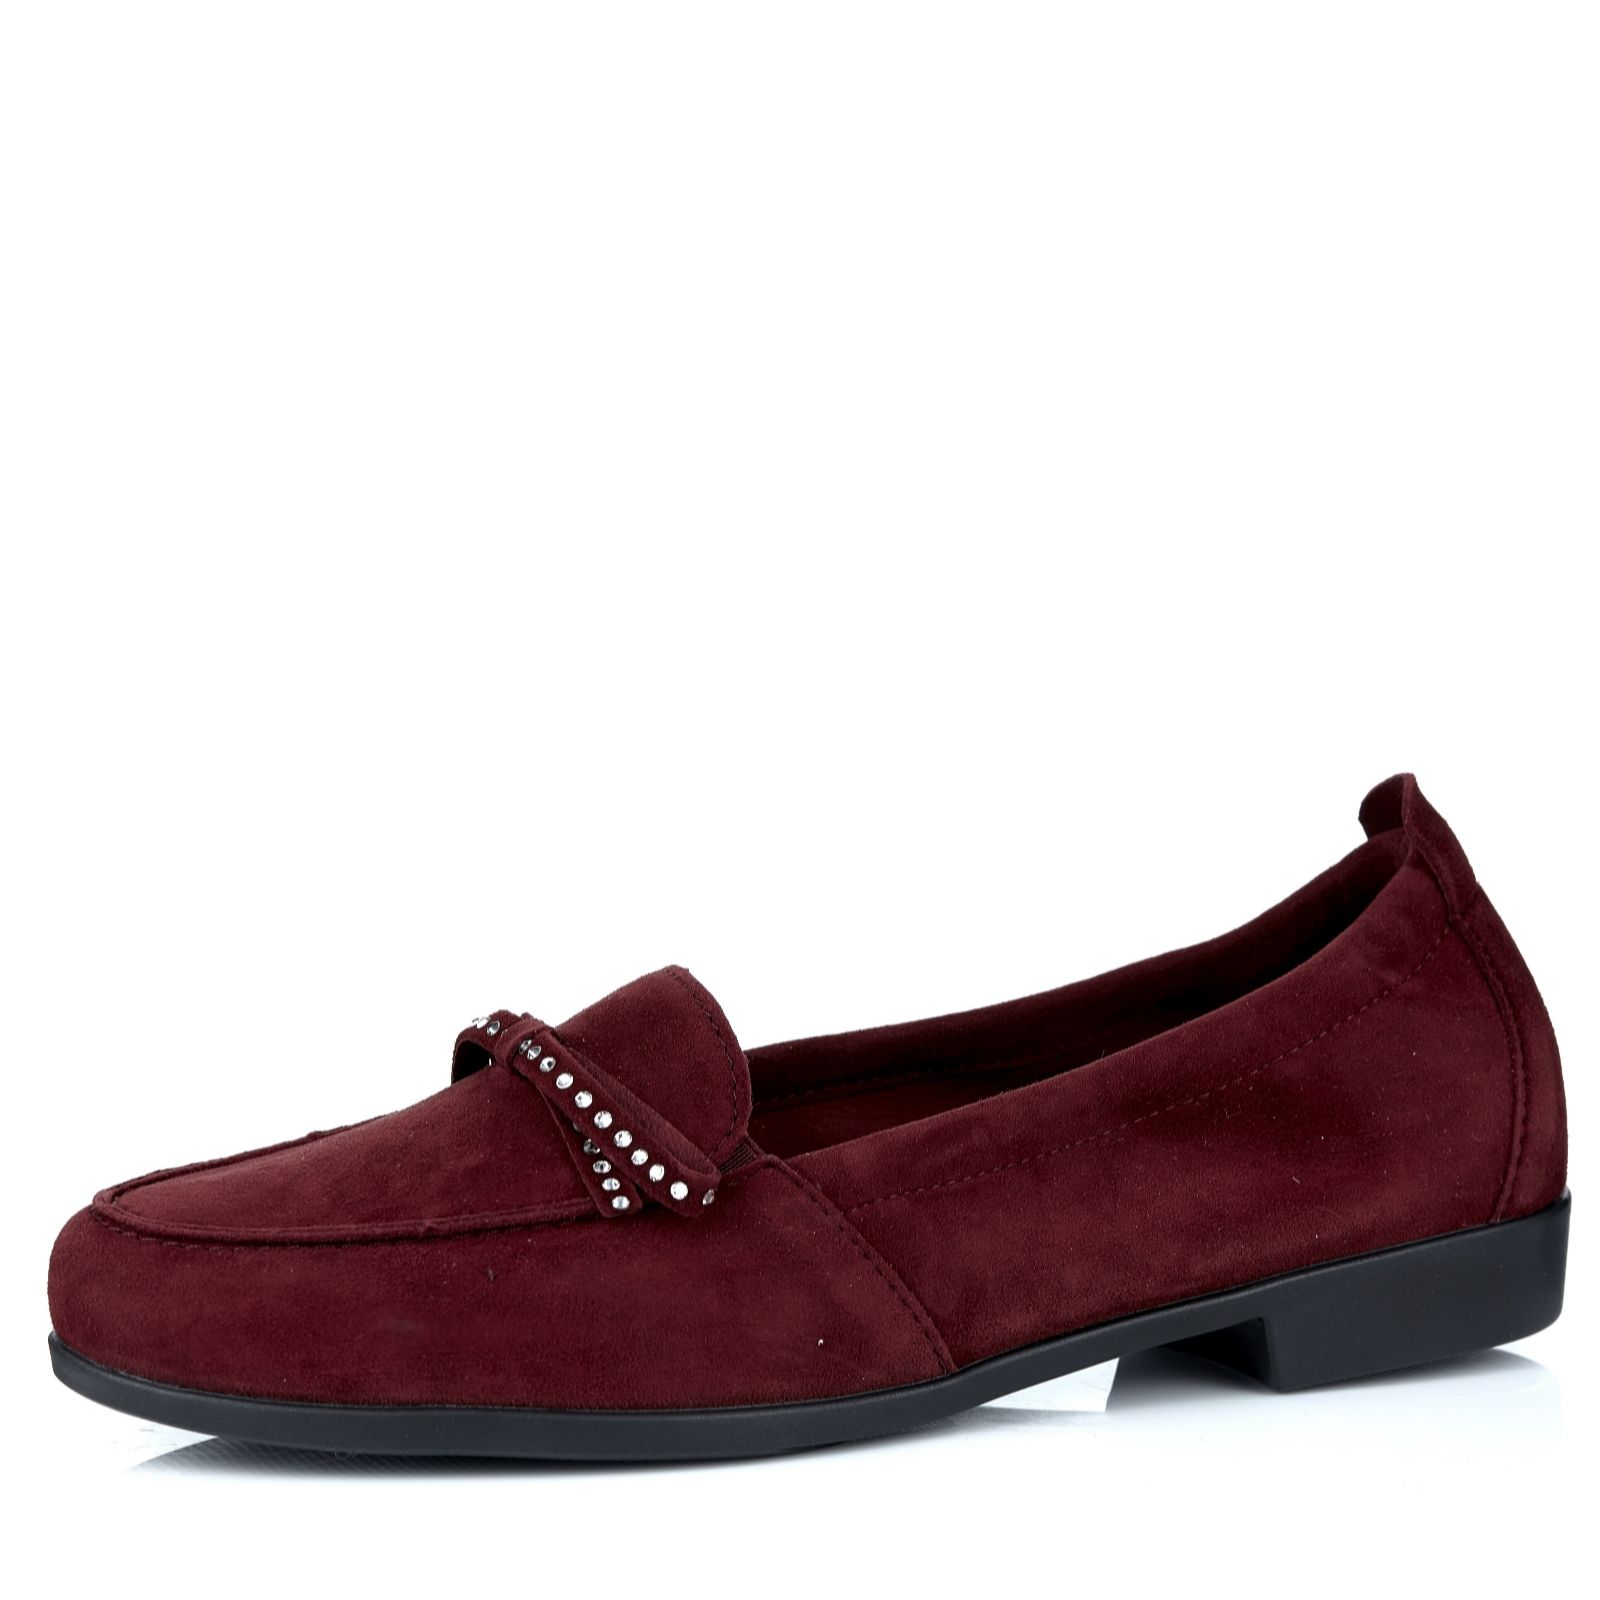 Vitaform Velvet Goat Loafer with Swarovski Crystal Trim Size 8 Uk